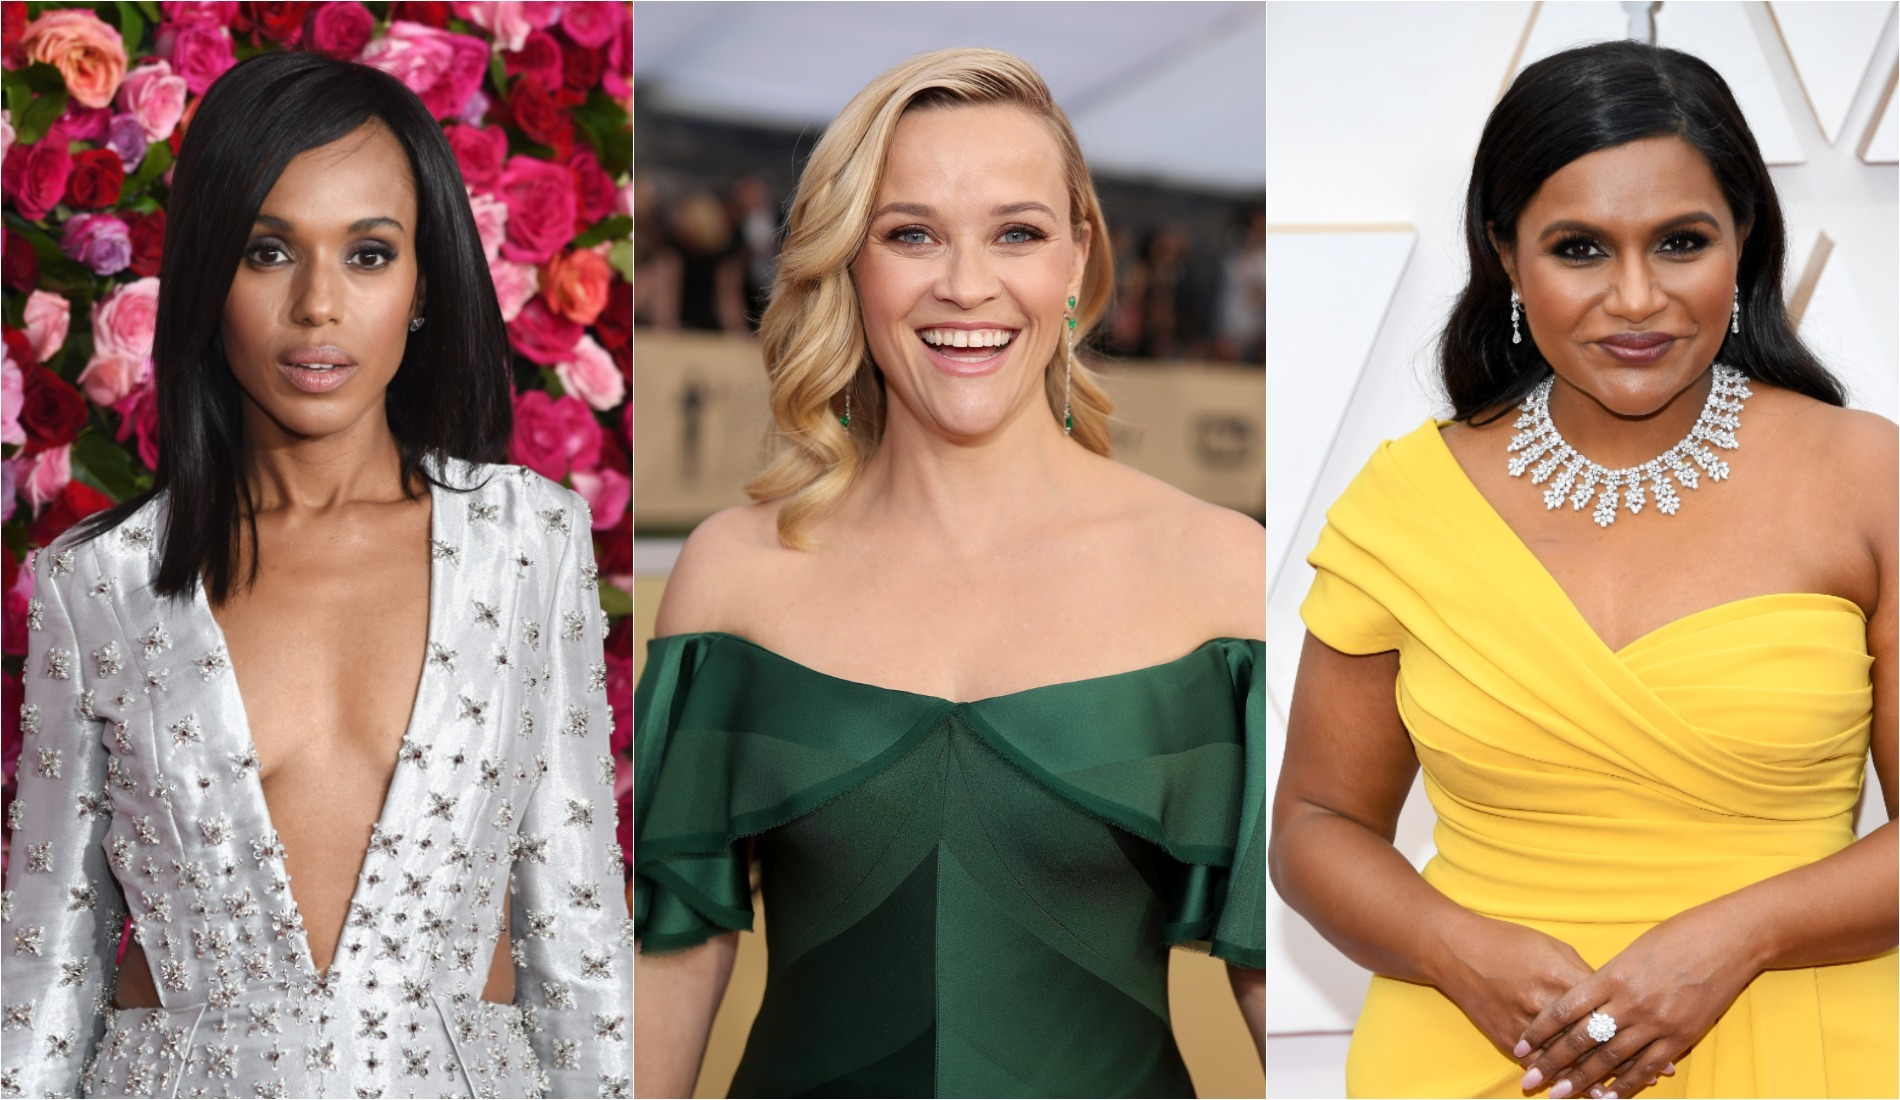 reese witherspoon, kerry washington, mindy kaling